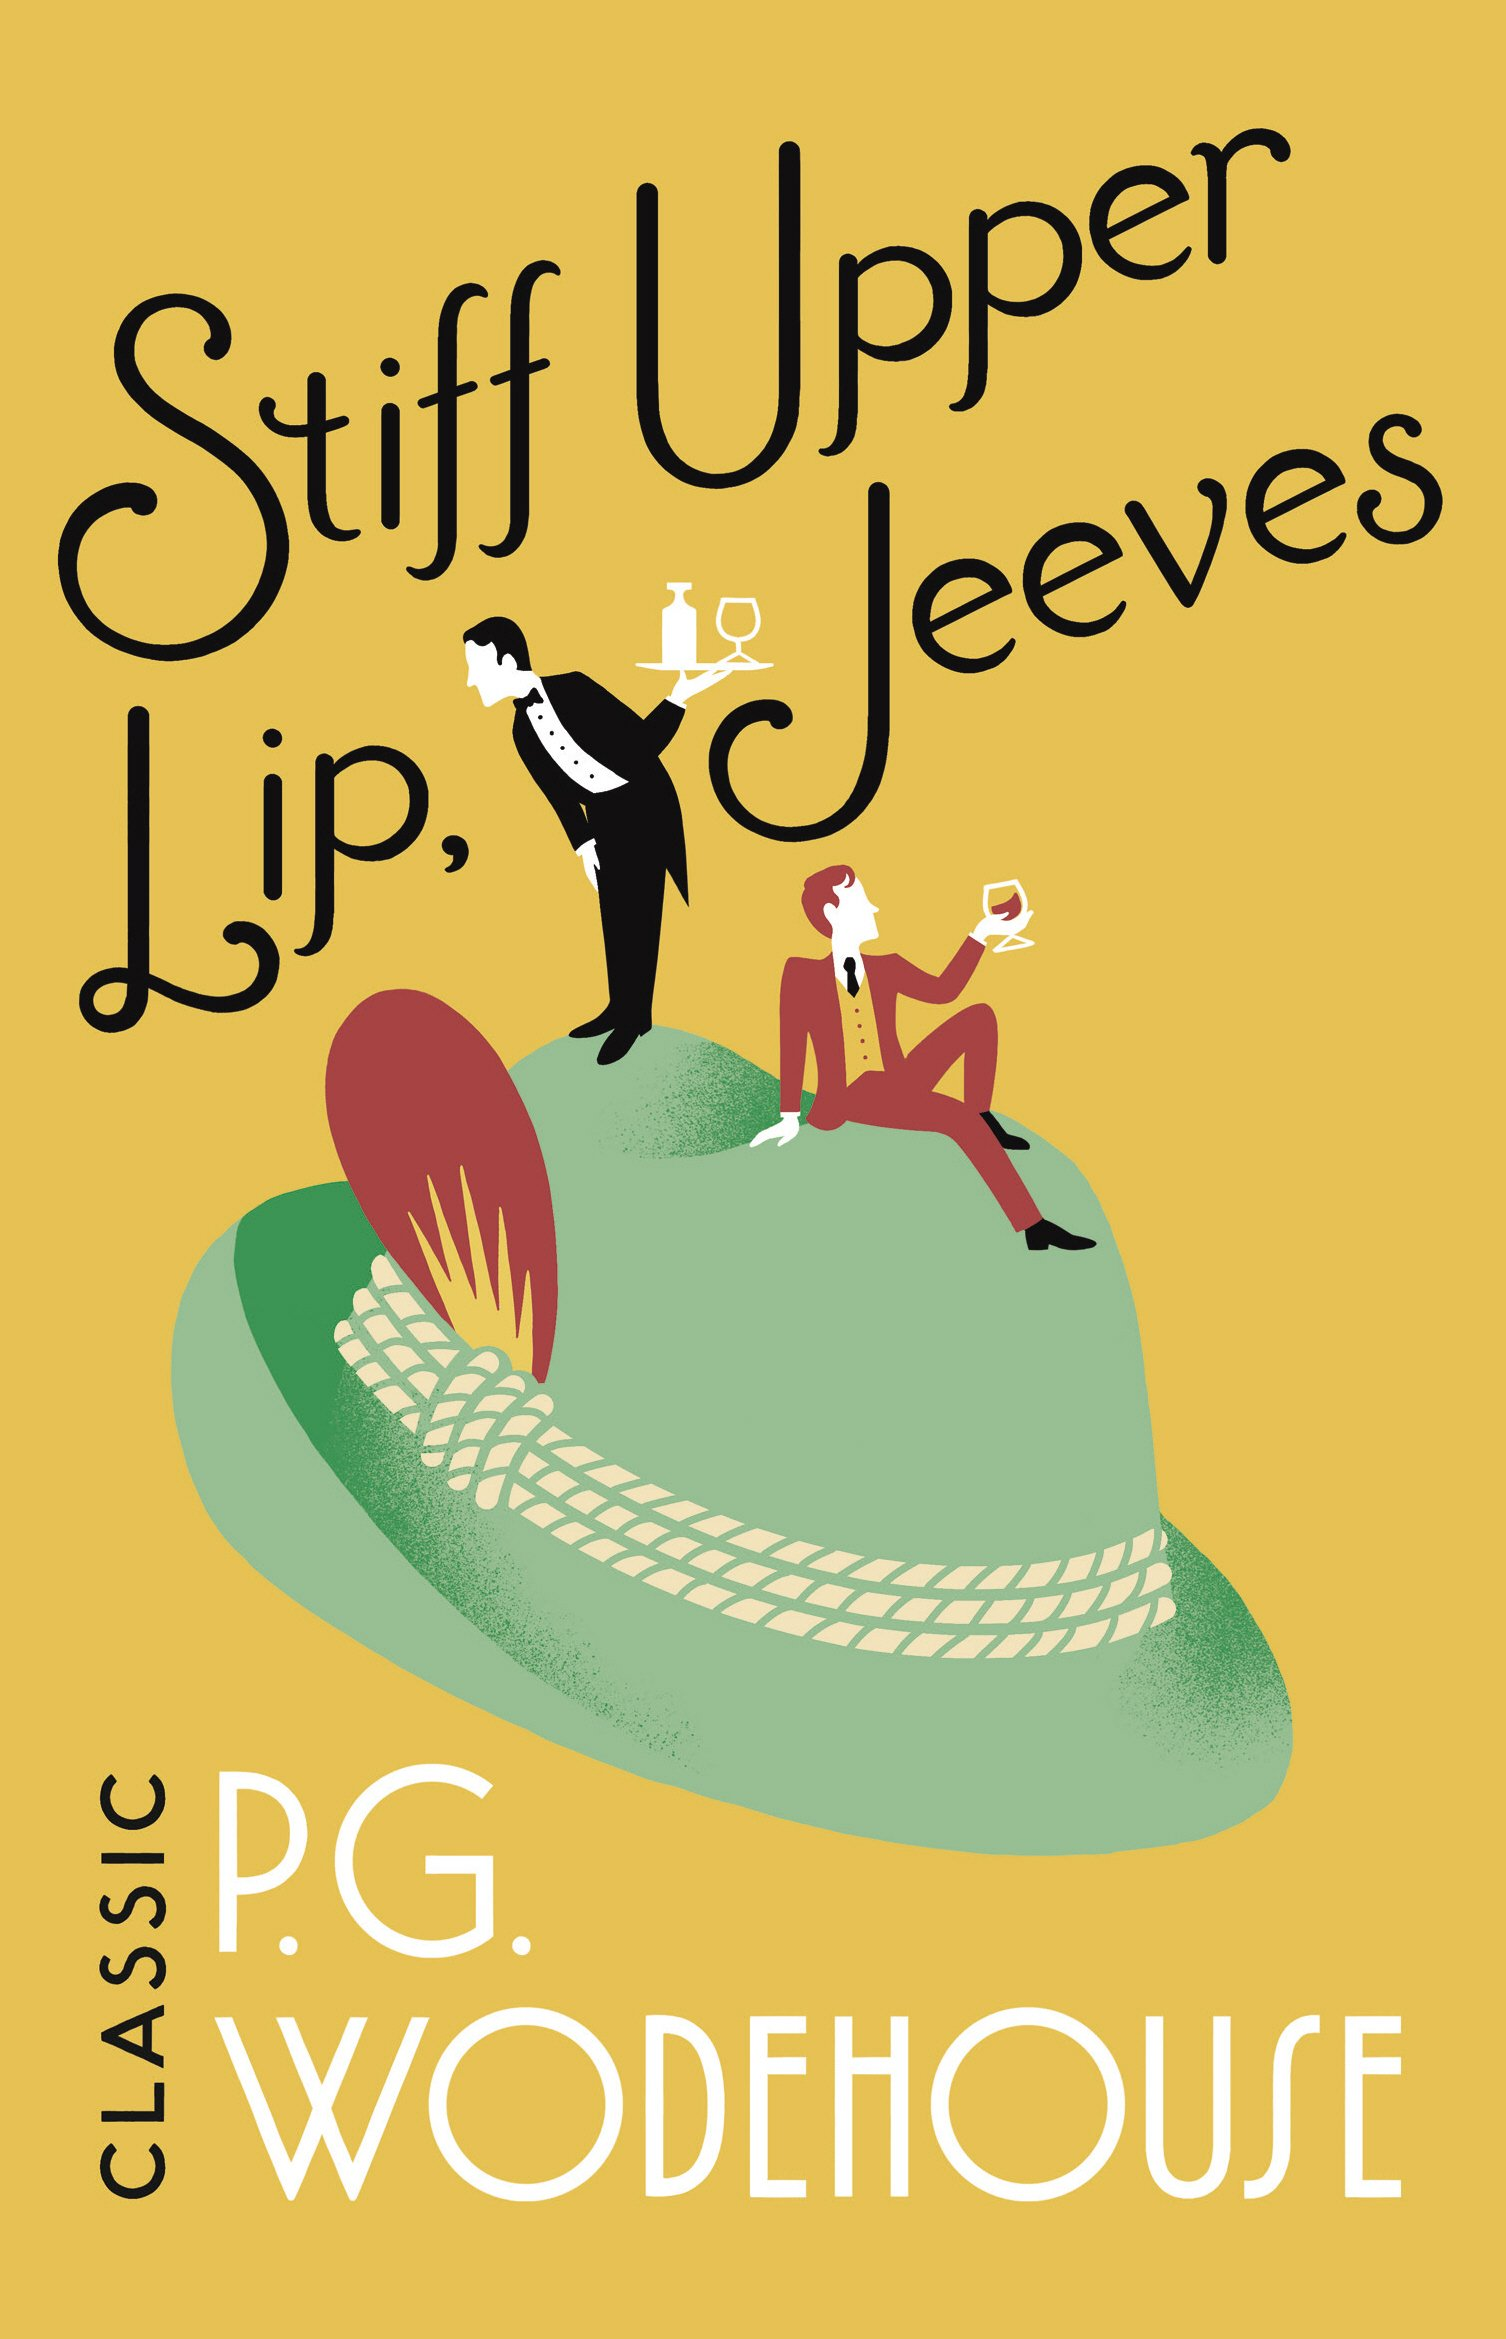 Download Stiff Upper Lip Jeeves Jeeves 13 By Pg Wodehouse